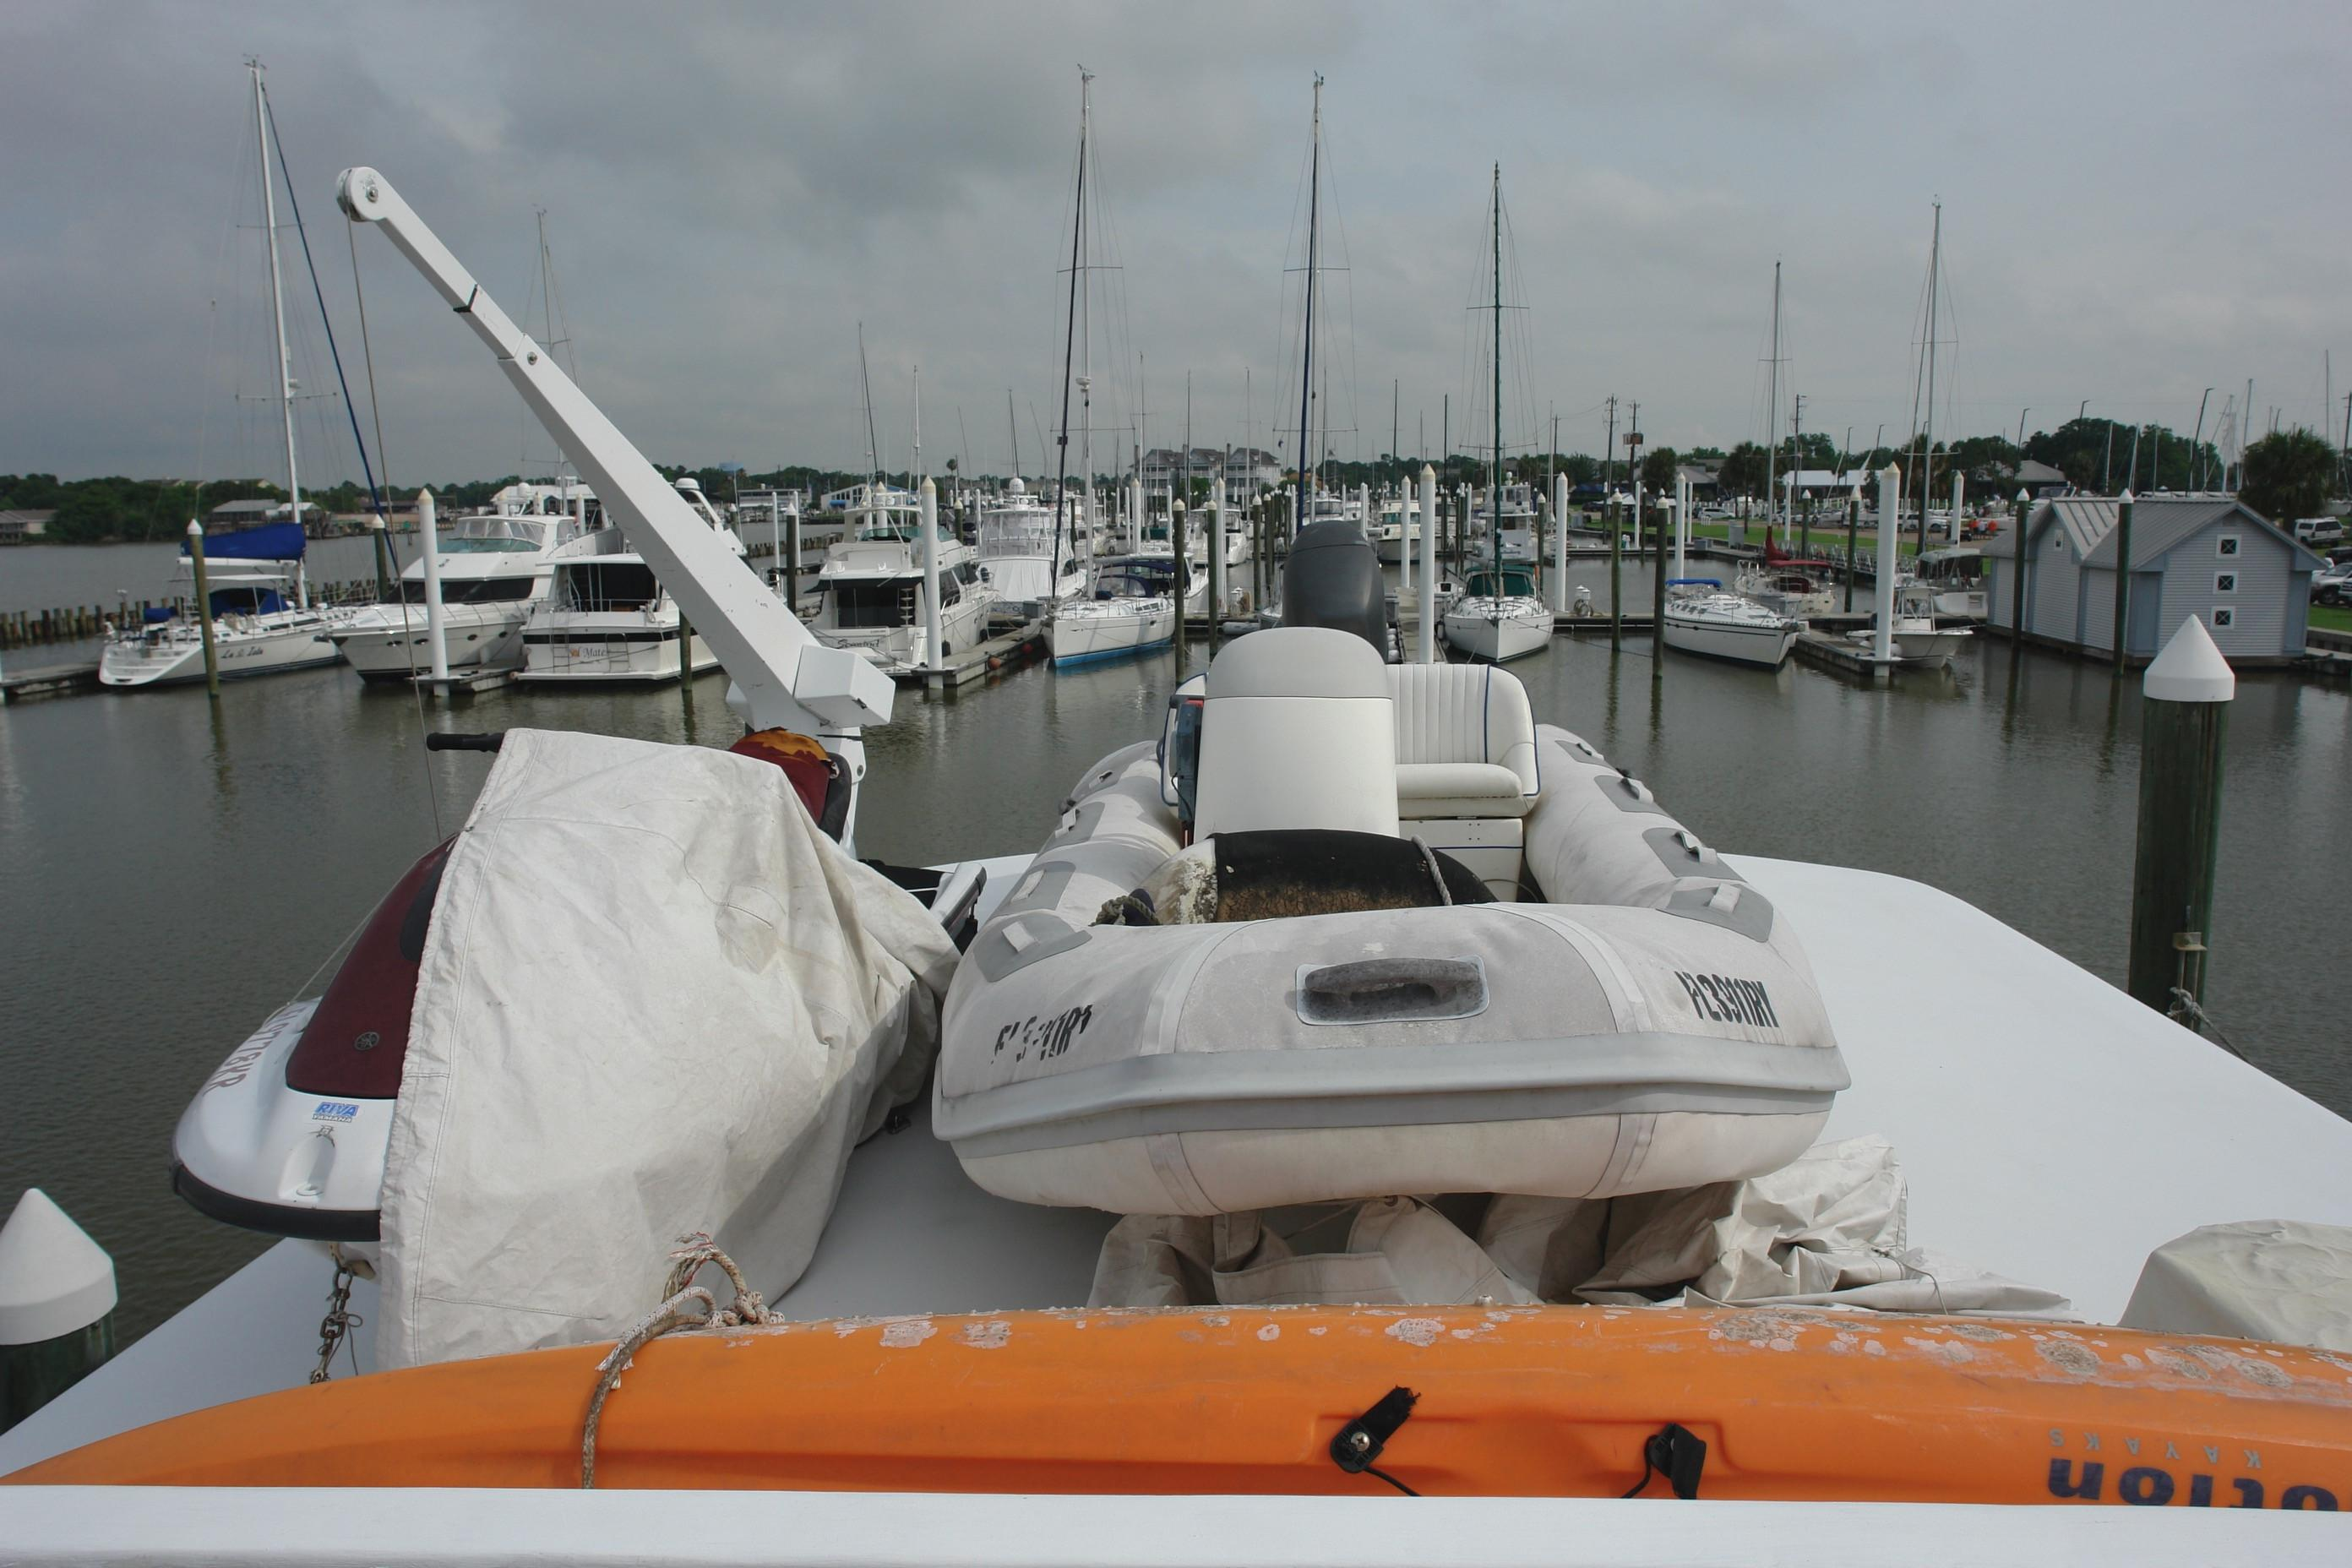 1985 hatteras 72 motor yacht yacht for sale in seabrook for 72 hatteras motor yacht for sale